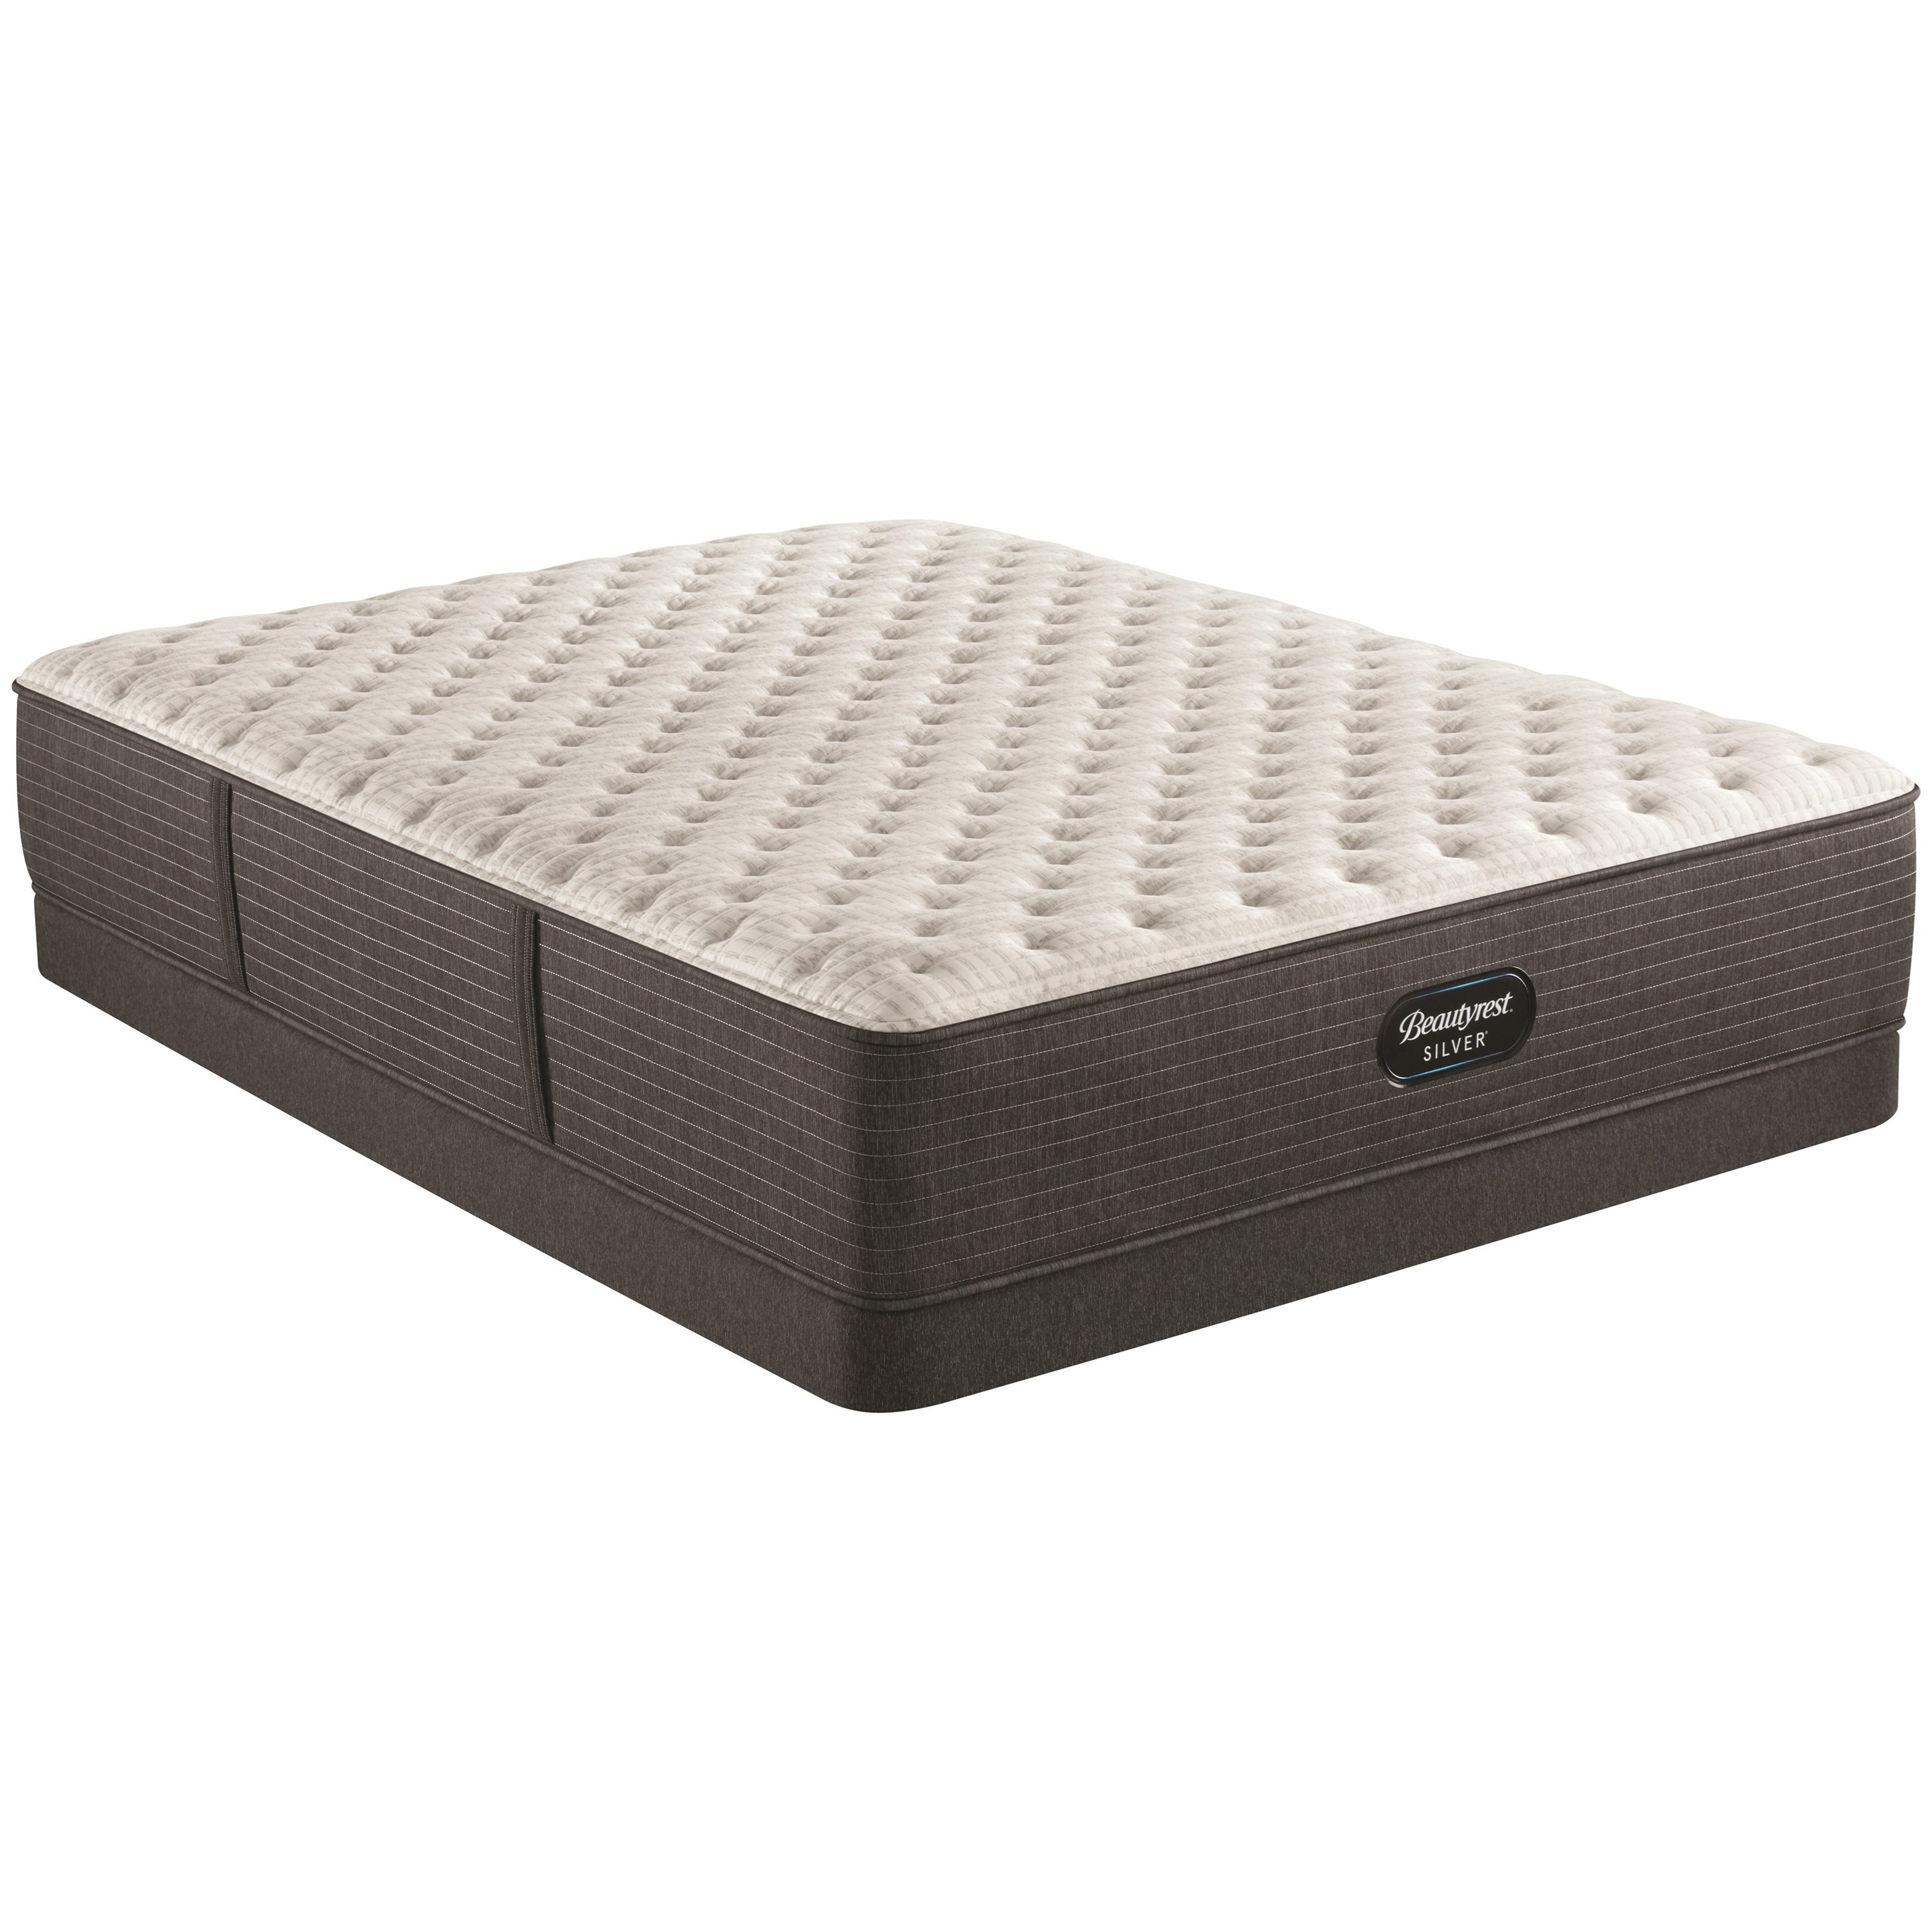 """BRS900-C Extra Firm Twin XL 13 3/4"""" Pocketed Coil Low Pro Set by Beautyrest at HomeWorld Furniture"""